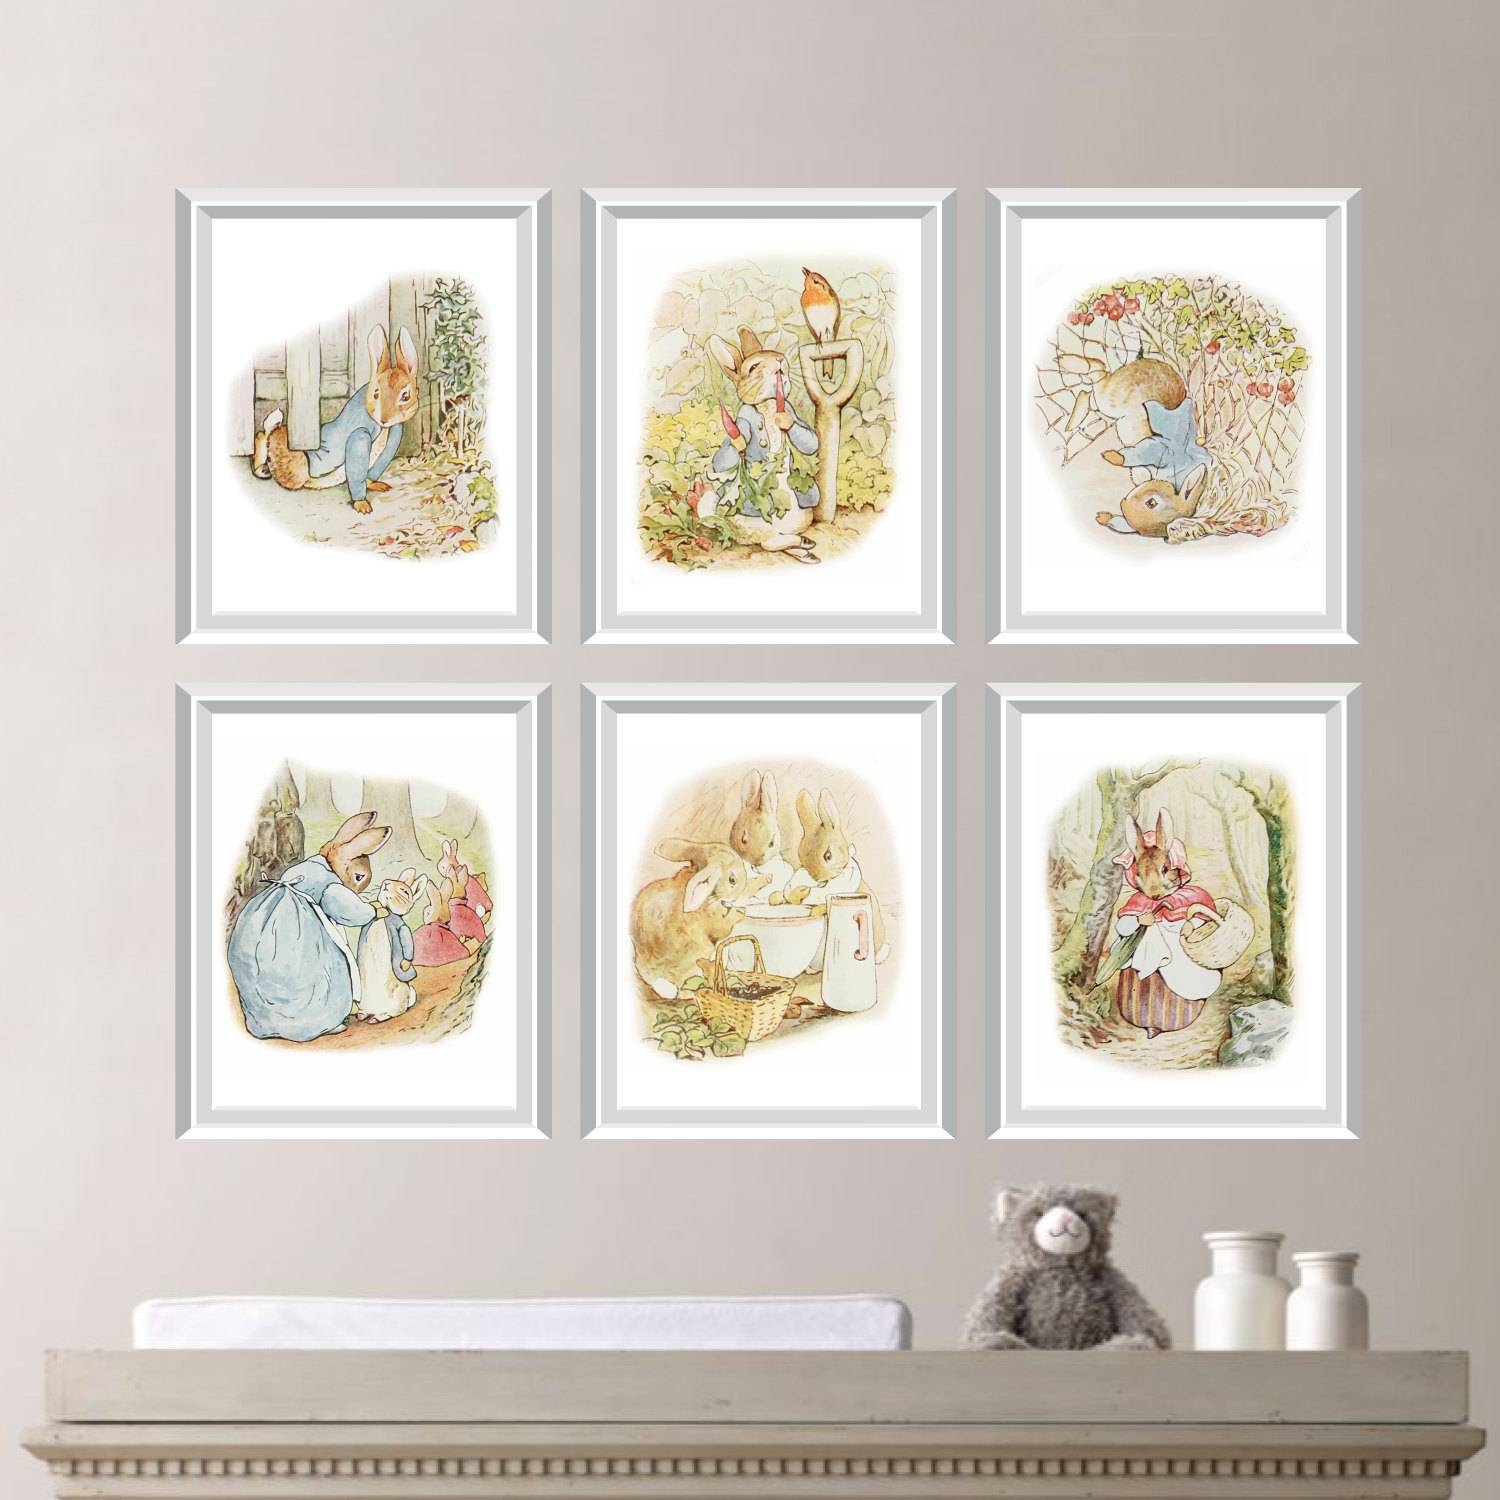 Peter Rabbit Nursery Decor. Baby Nursery Print Art (View 4 of 15)